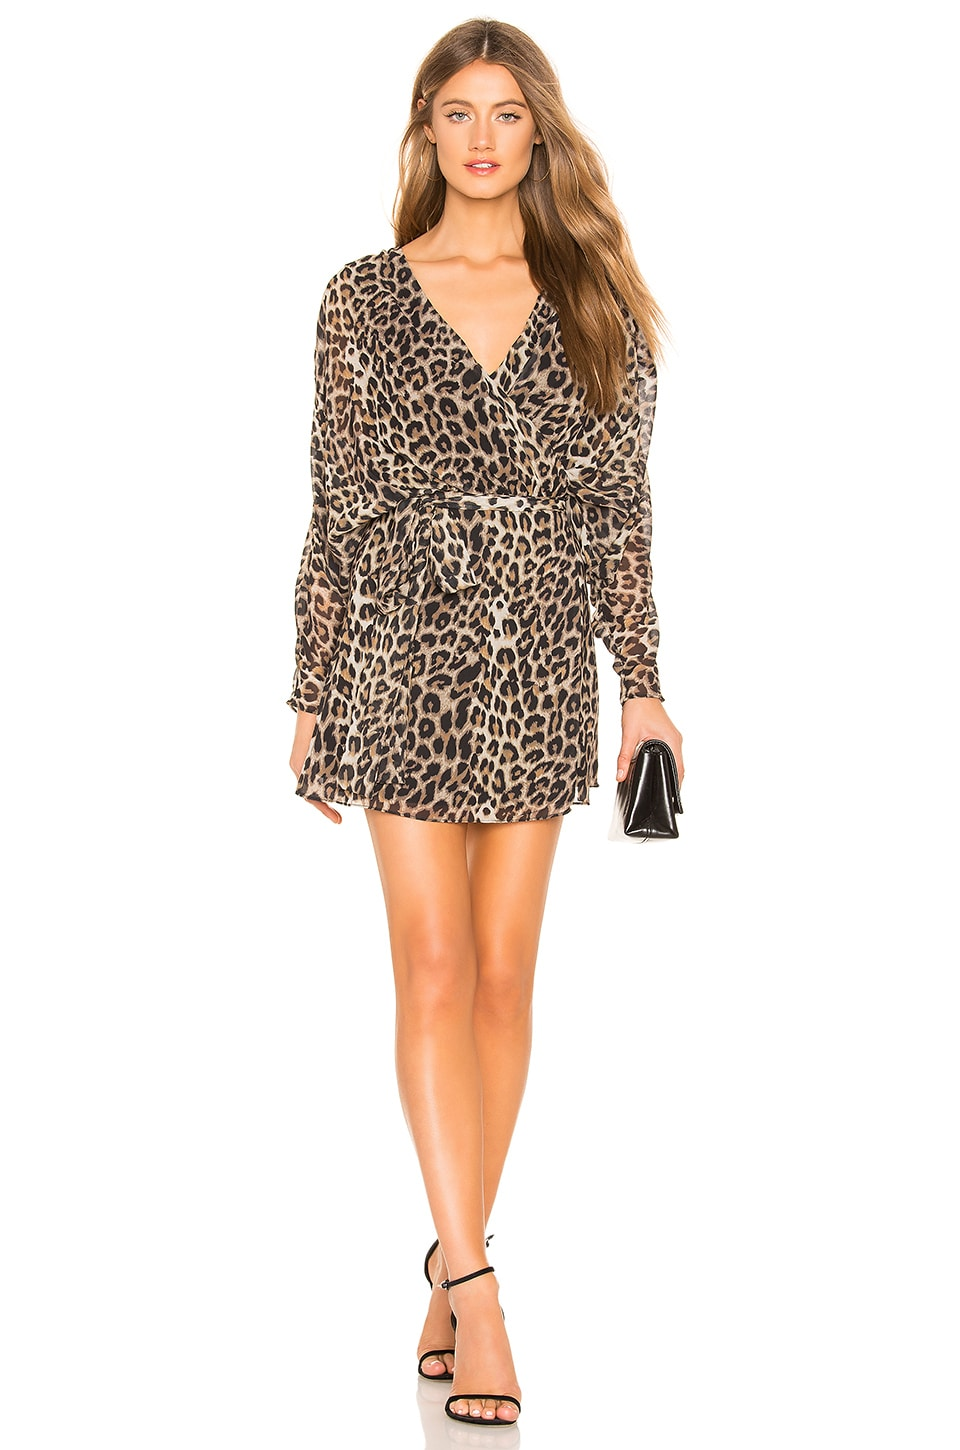 LPA Liliana Mini Dress in Leopard